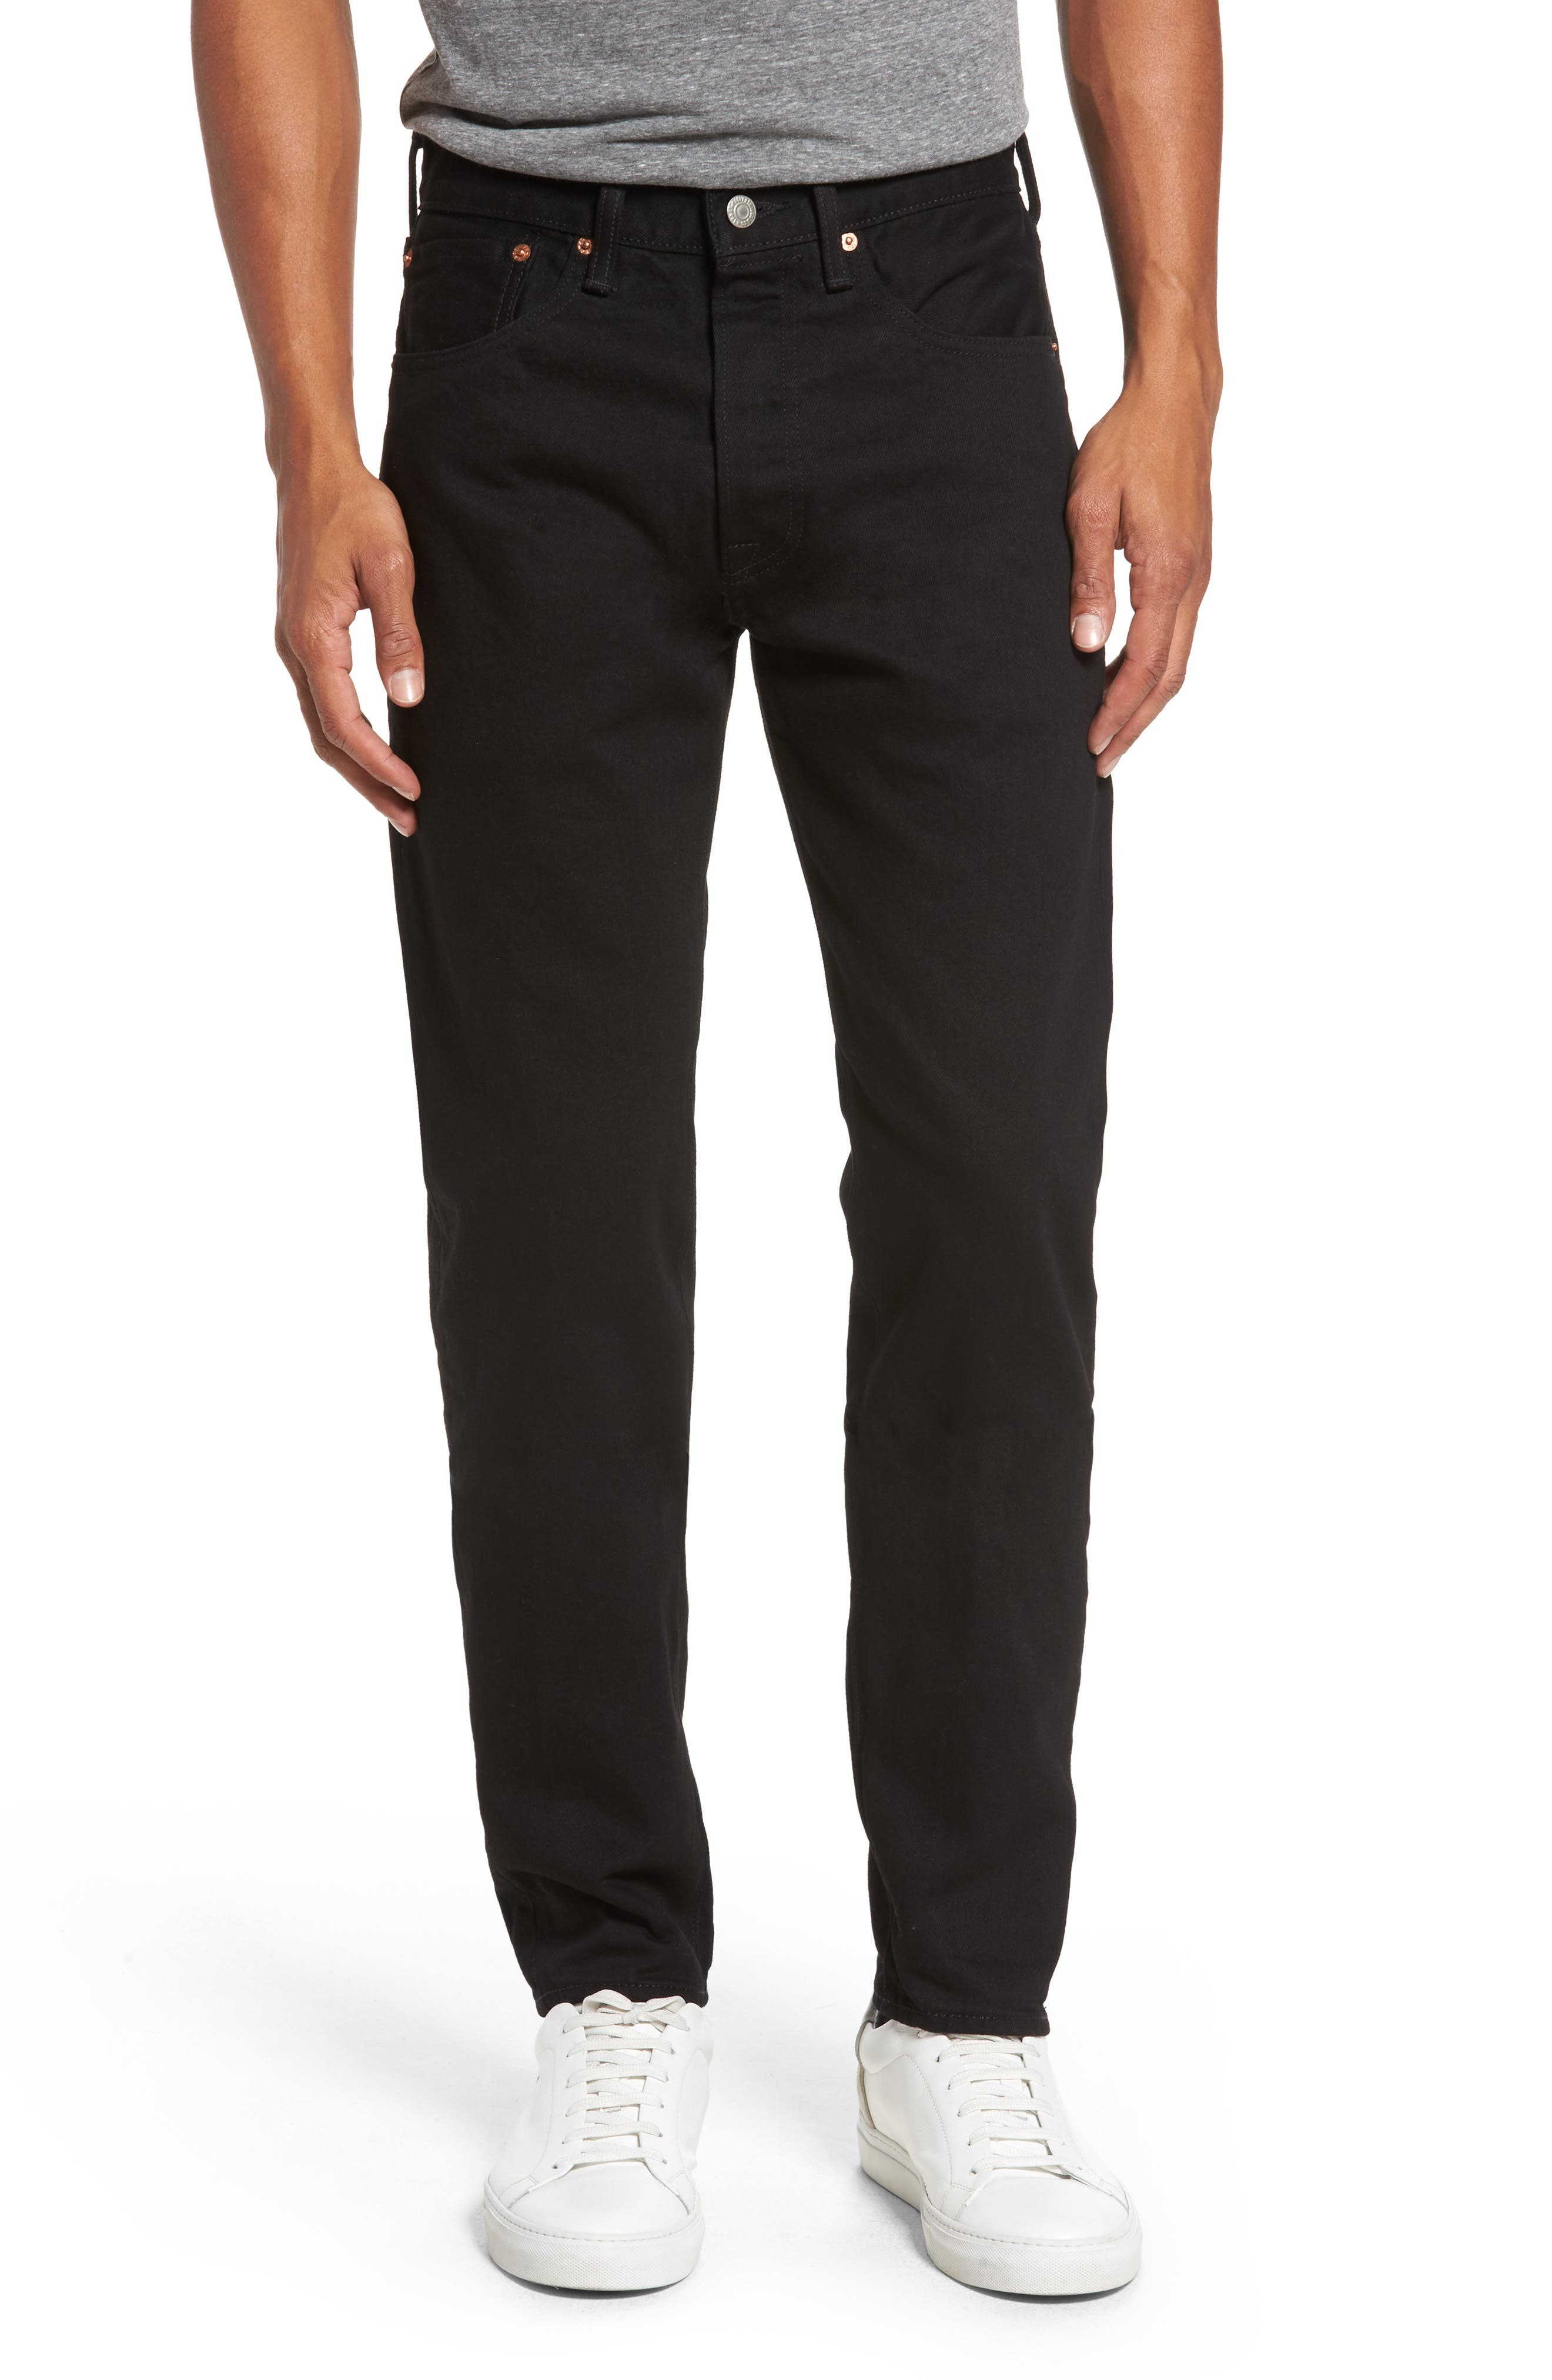 Main Image - Levi's® 501™ Slouchy Tapered Slim Fit Jeans (Black Punk)